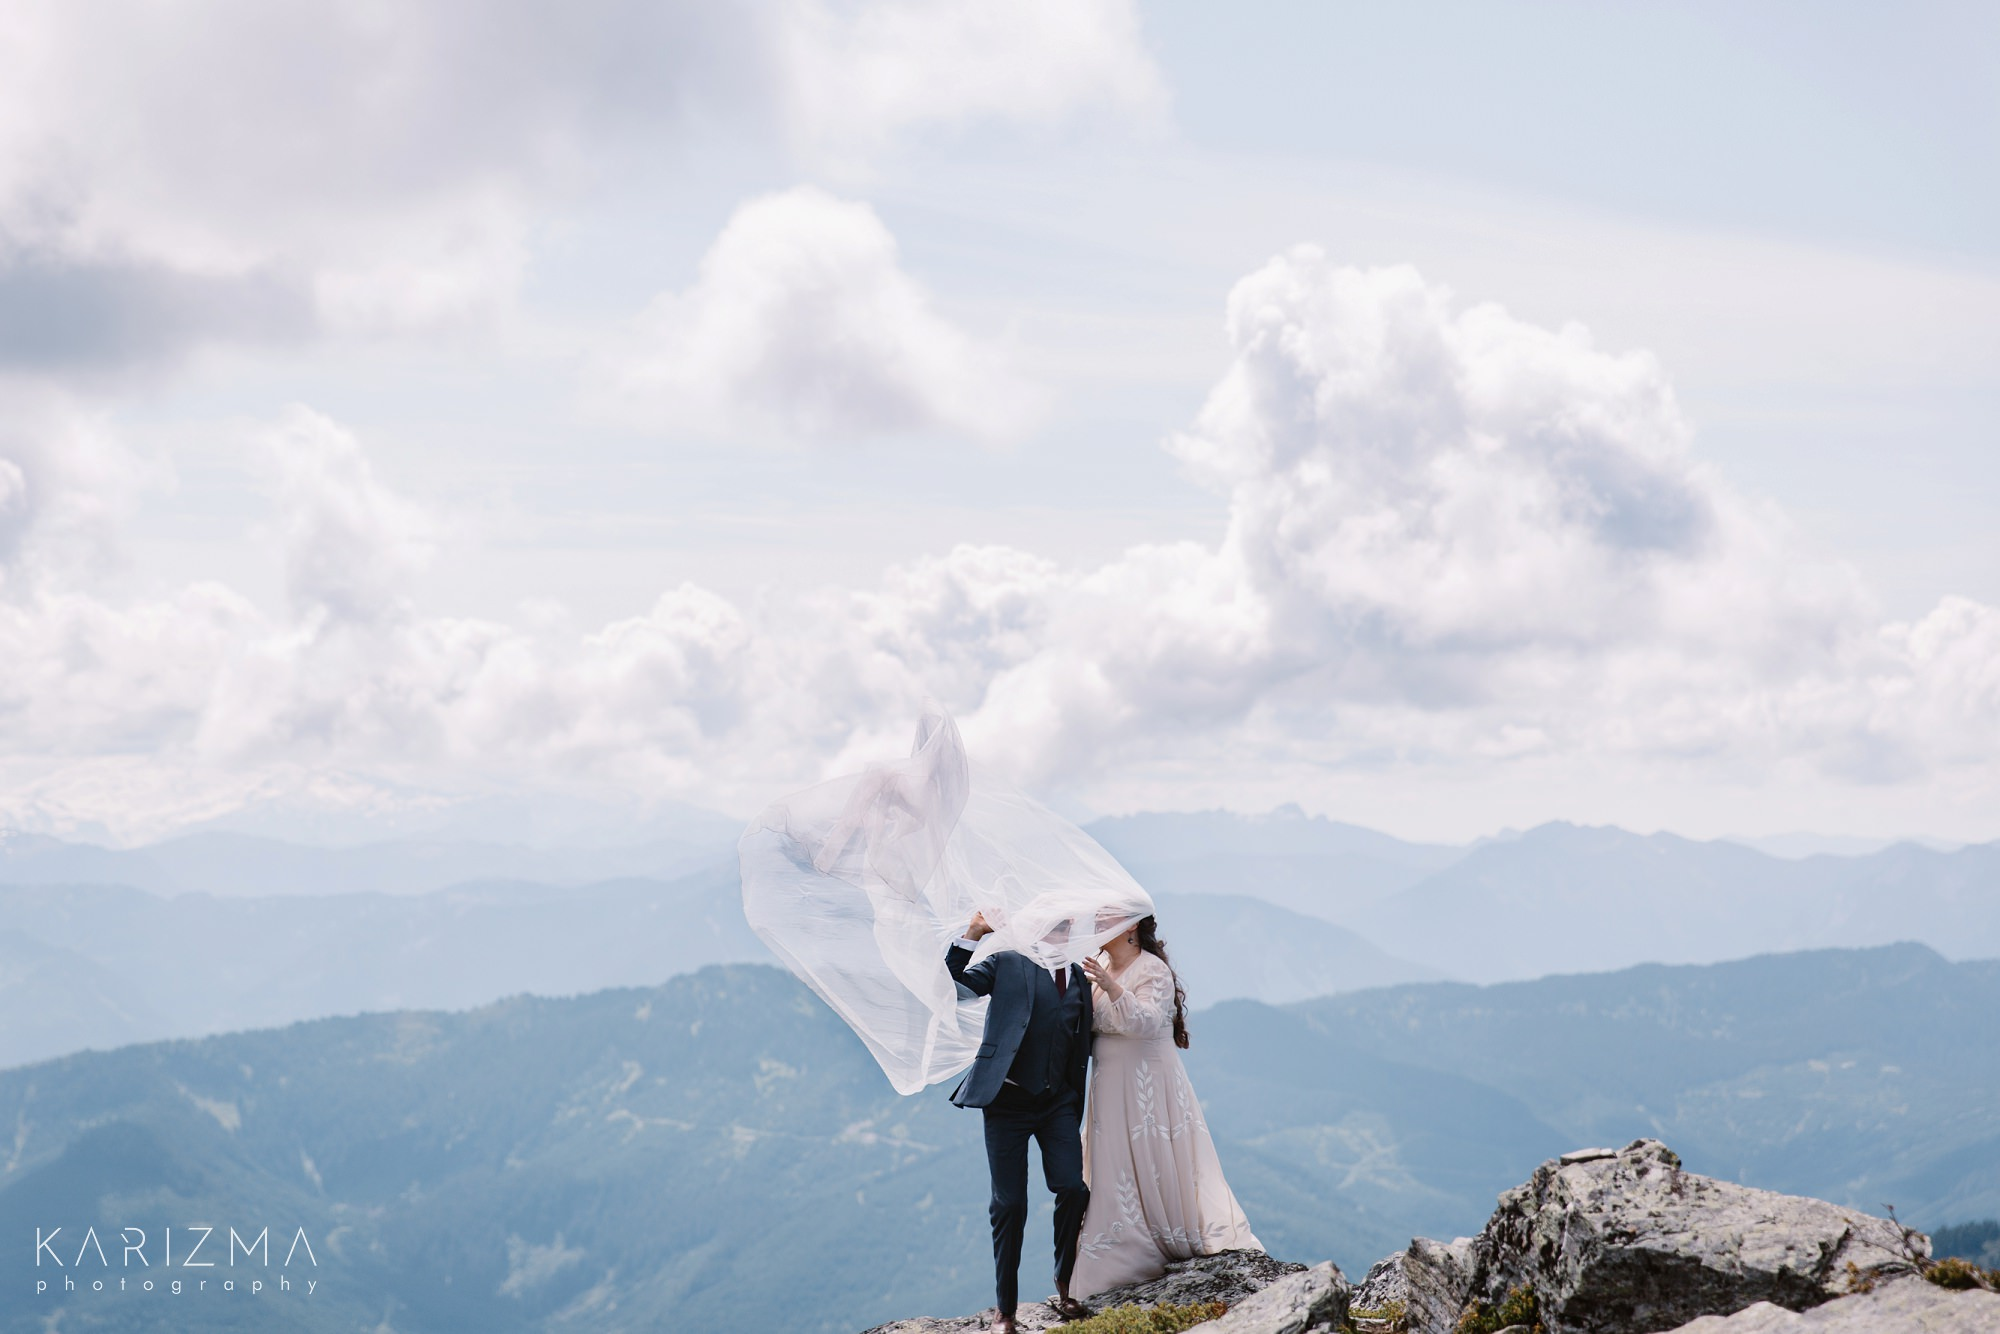 Bride and groom at the top of the mountain